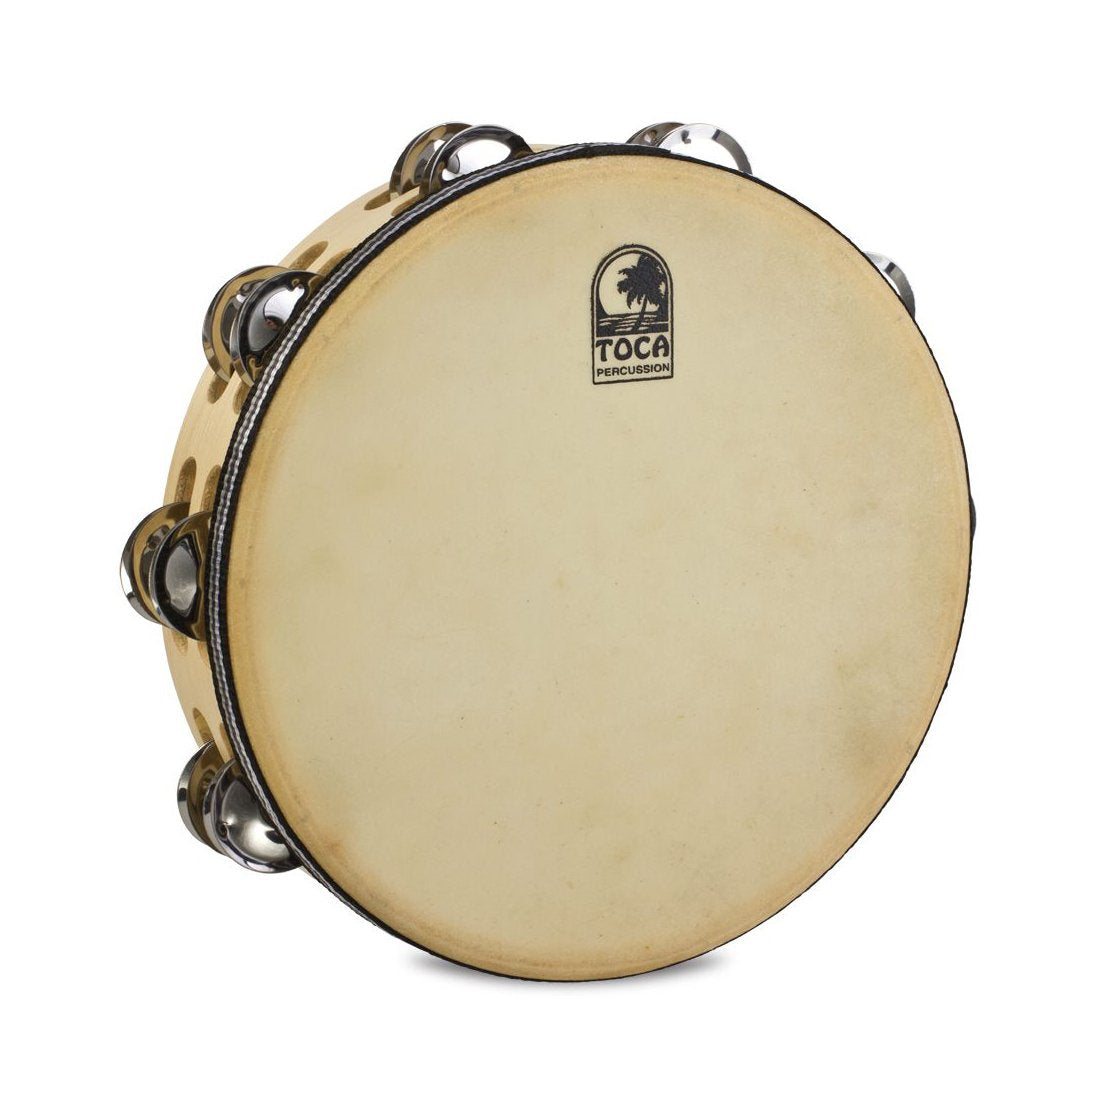 "Toca Percussion - Player's Series - 10"" Double Row Wood Tambourine Double Row with Head (10"")"